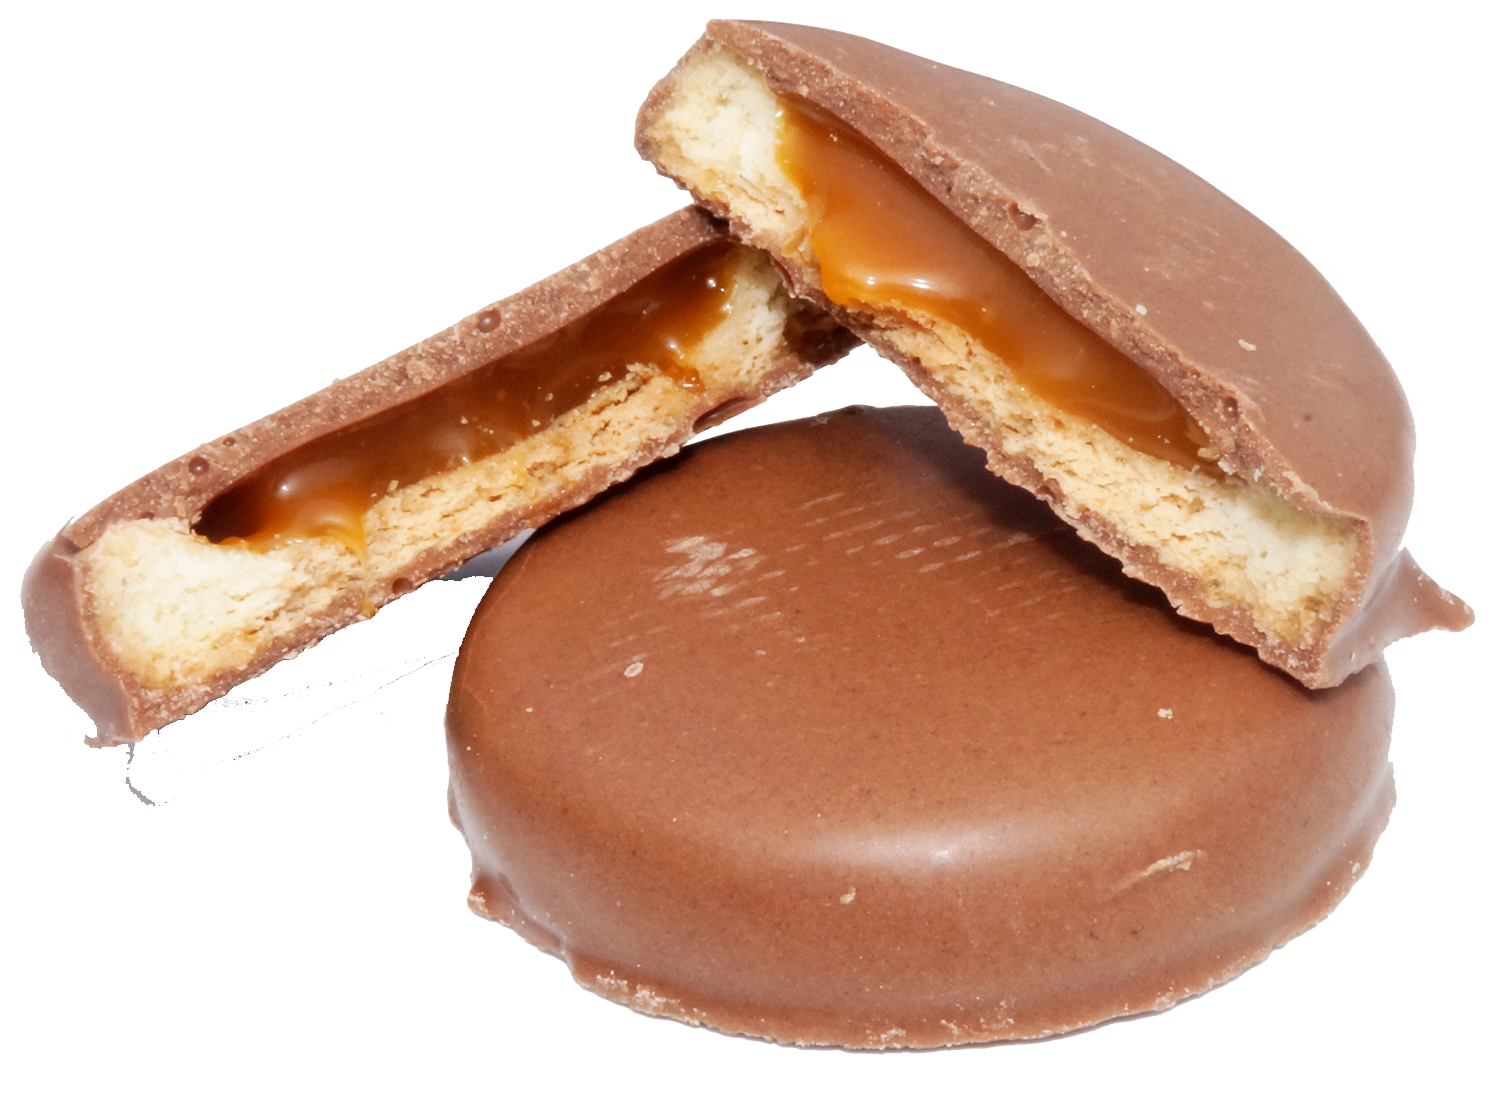 Biscuit With Caramel Fillt